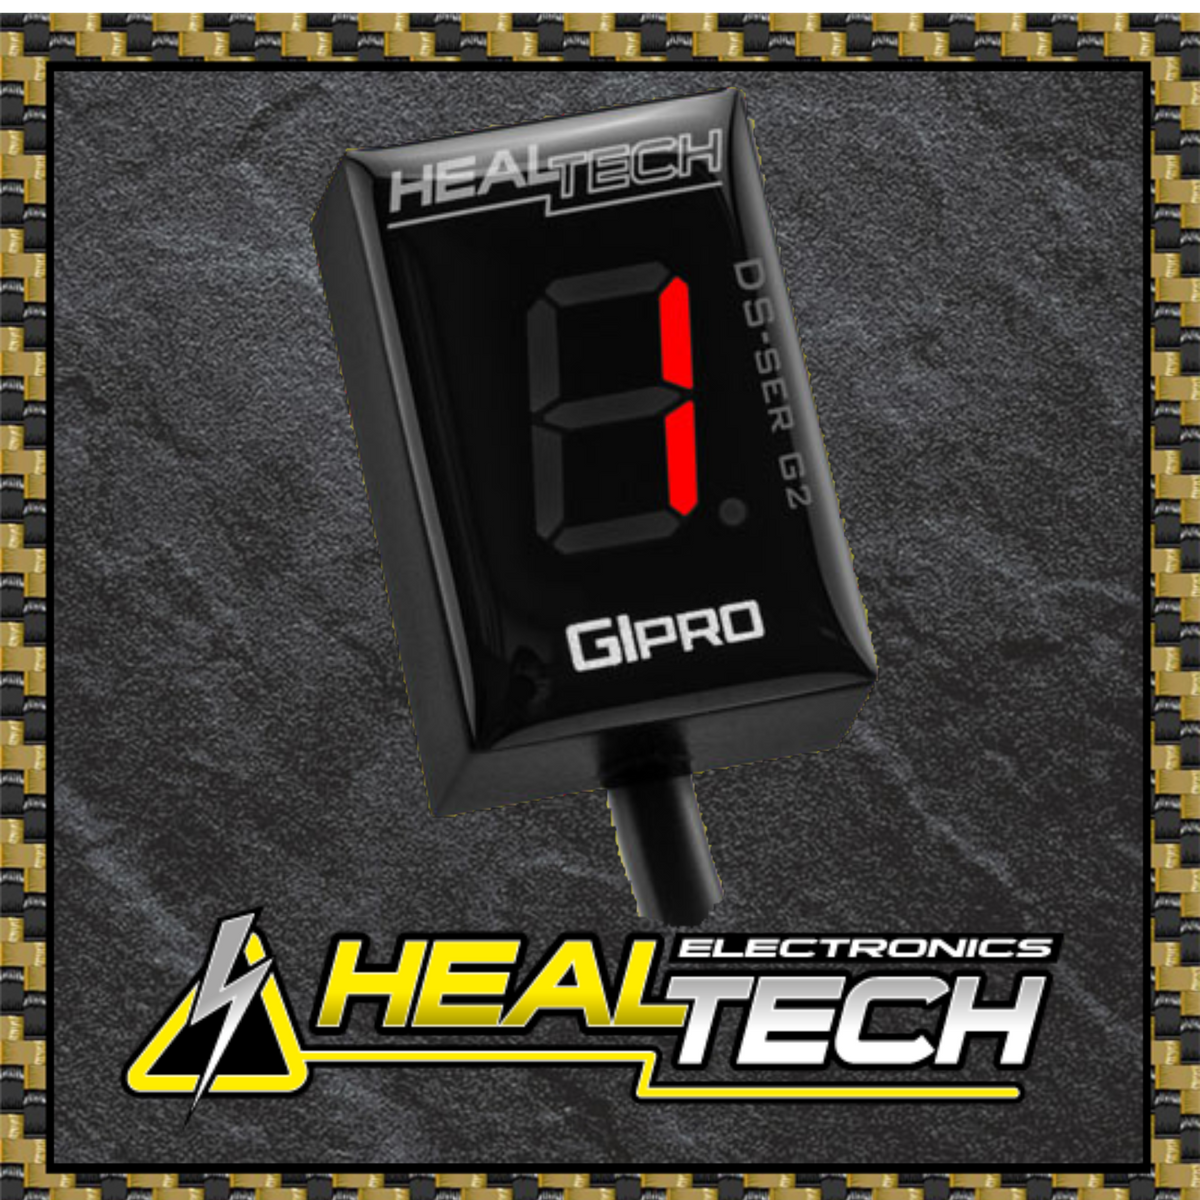 GIpro DS-Series G2, Gear Indicator, Healtech - Averys Motorcycles